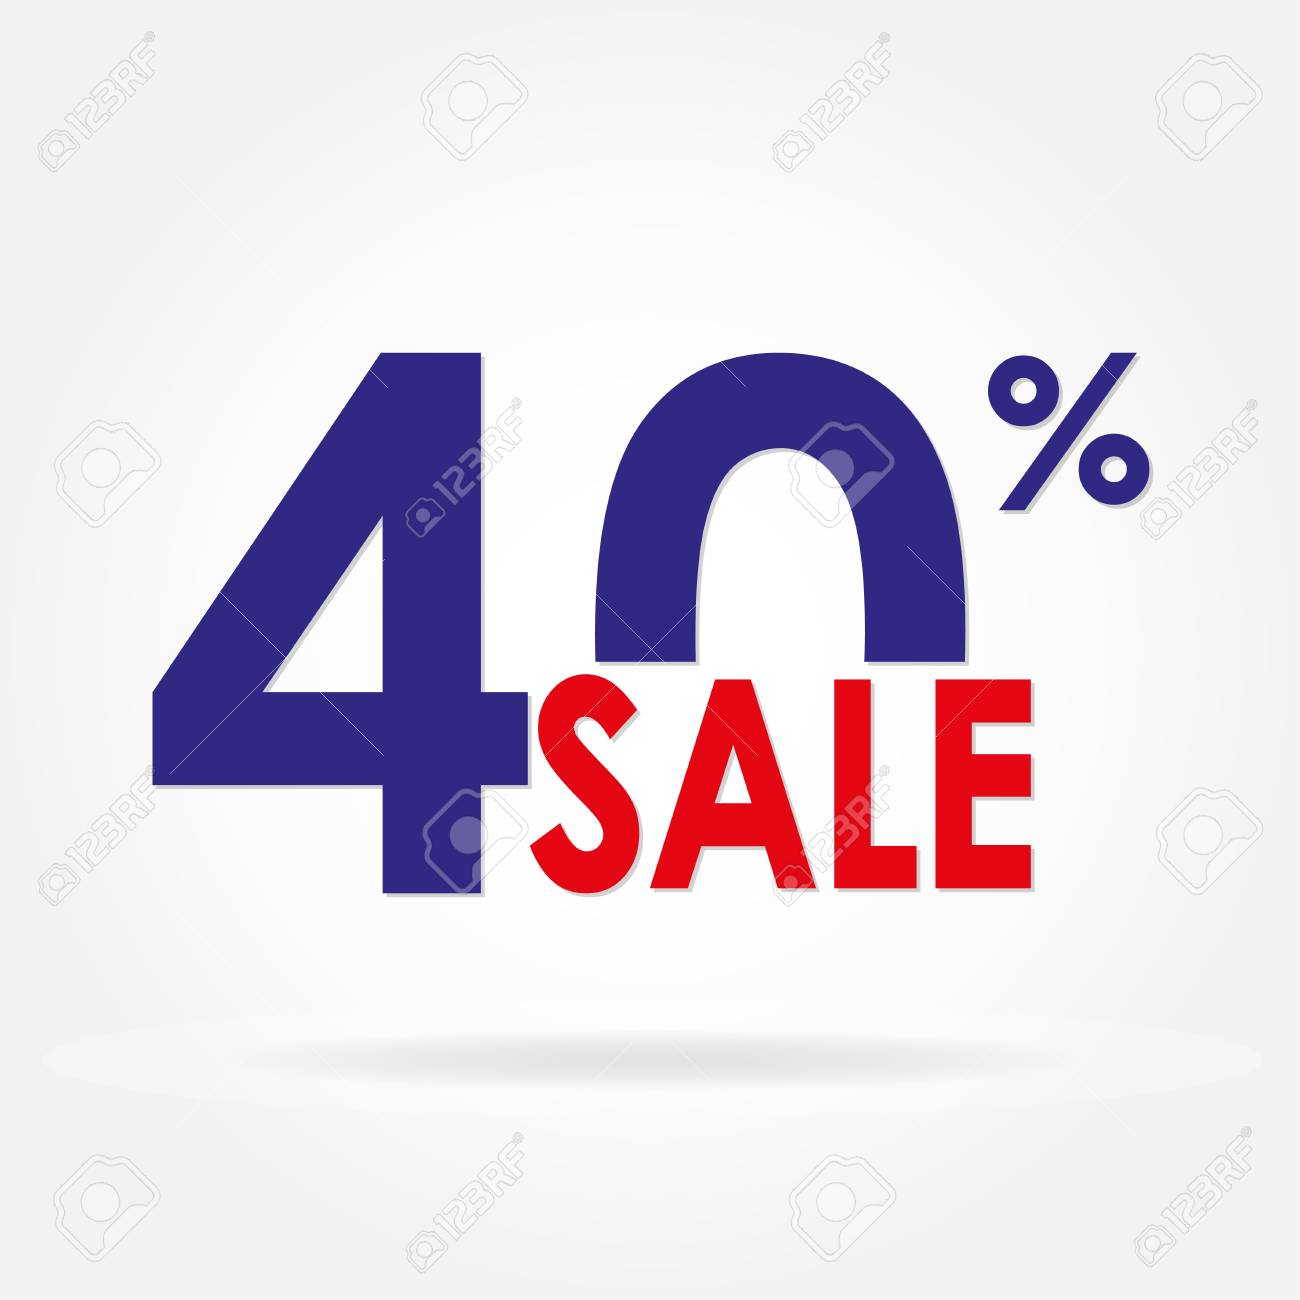 sale 40 and discount price sign or icon sales design template